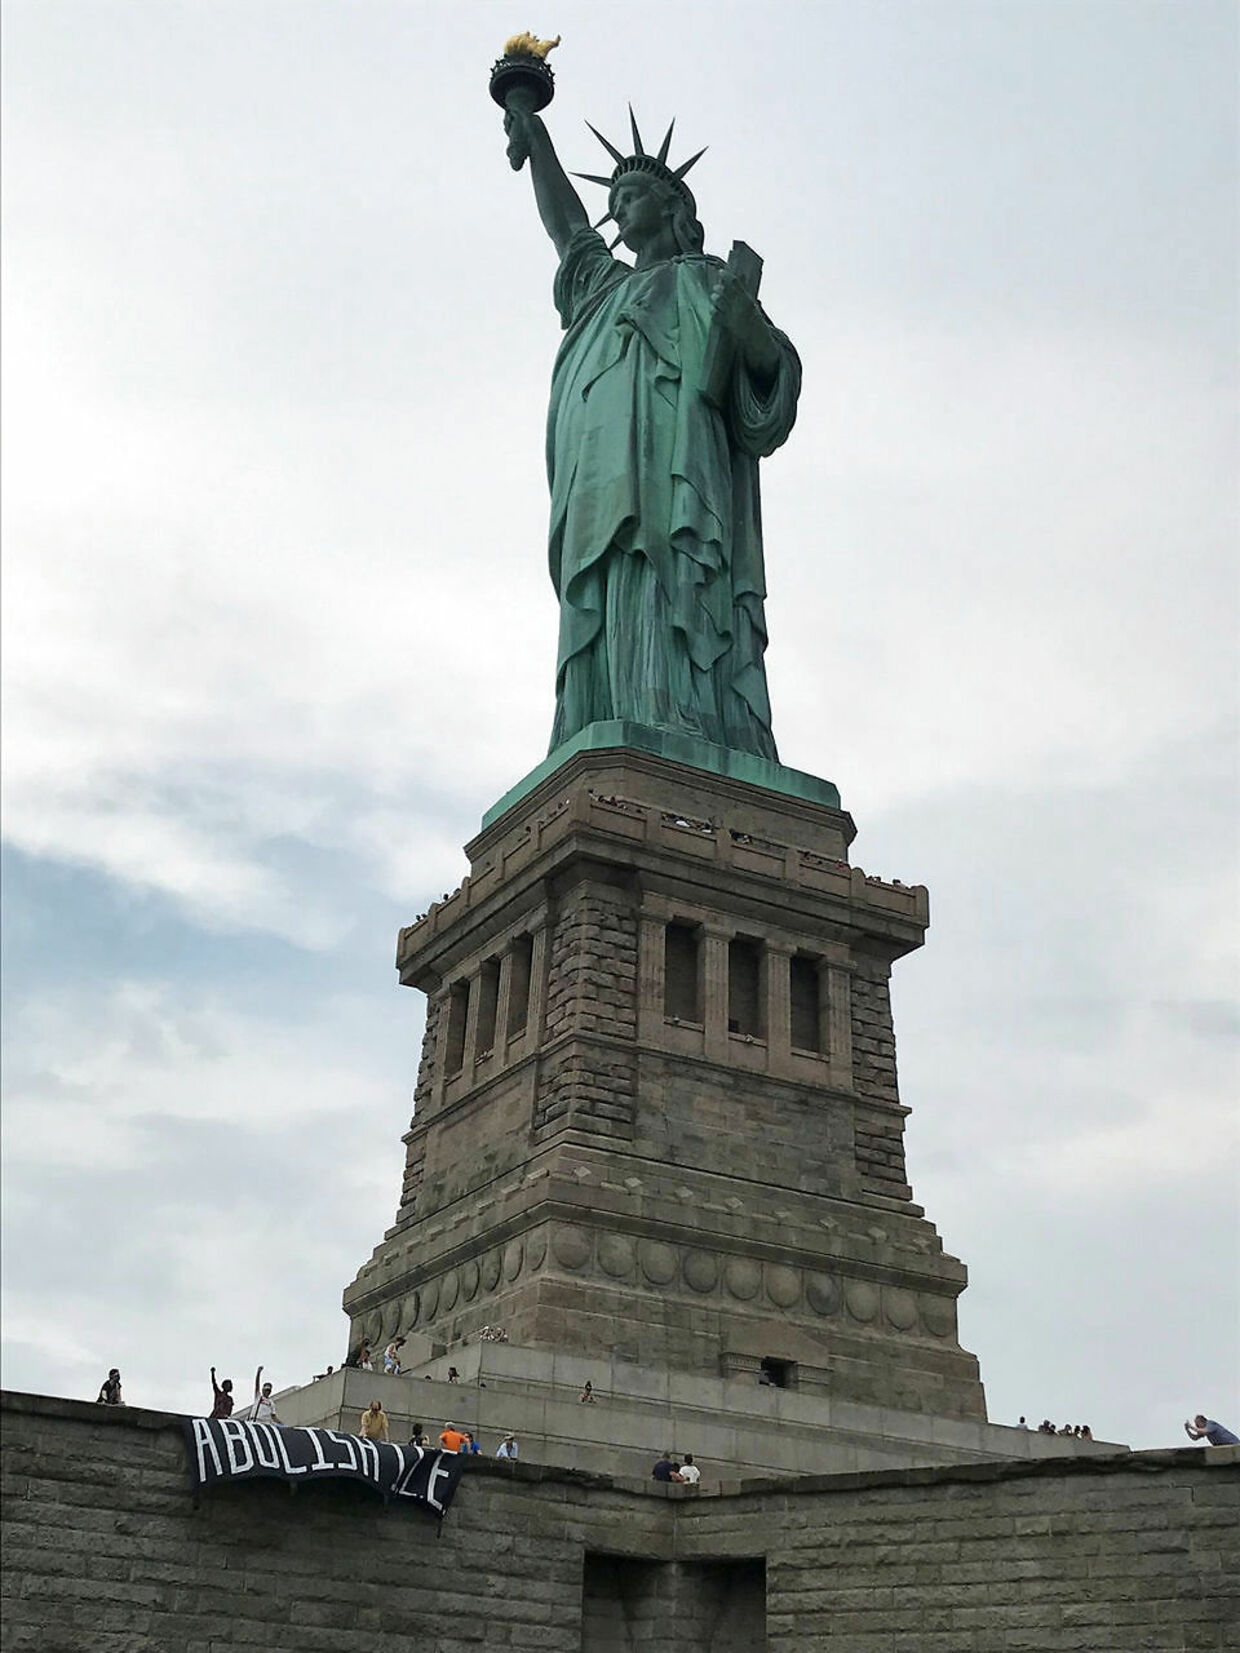 The group Rise and Resist stage a protest at the Statue of Liberty in New York, U.S. July 4, 2018 in this picture obtained from social media. Rise and Resist/via REUTERS ATTENTION EDITORS - THIS IMAGE HAS BEEN SUPPLIED BY A THIRD PARTY. MANDATORY CREDIT.NO RESALES.NO ARCHIVES.